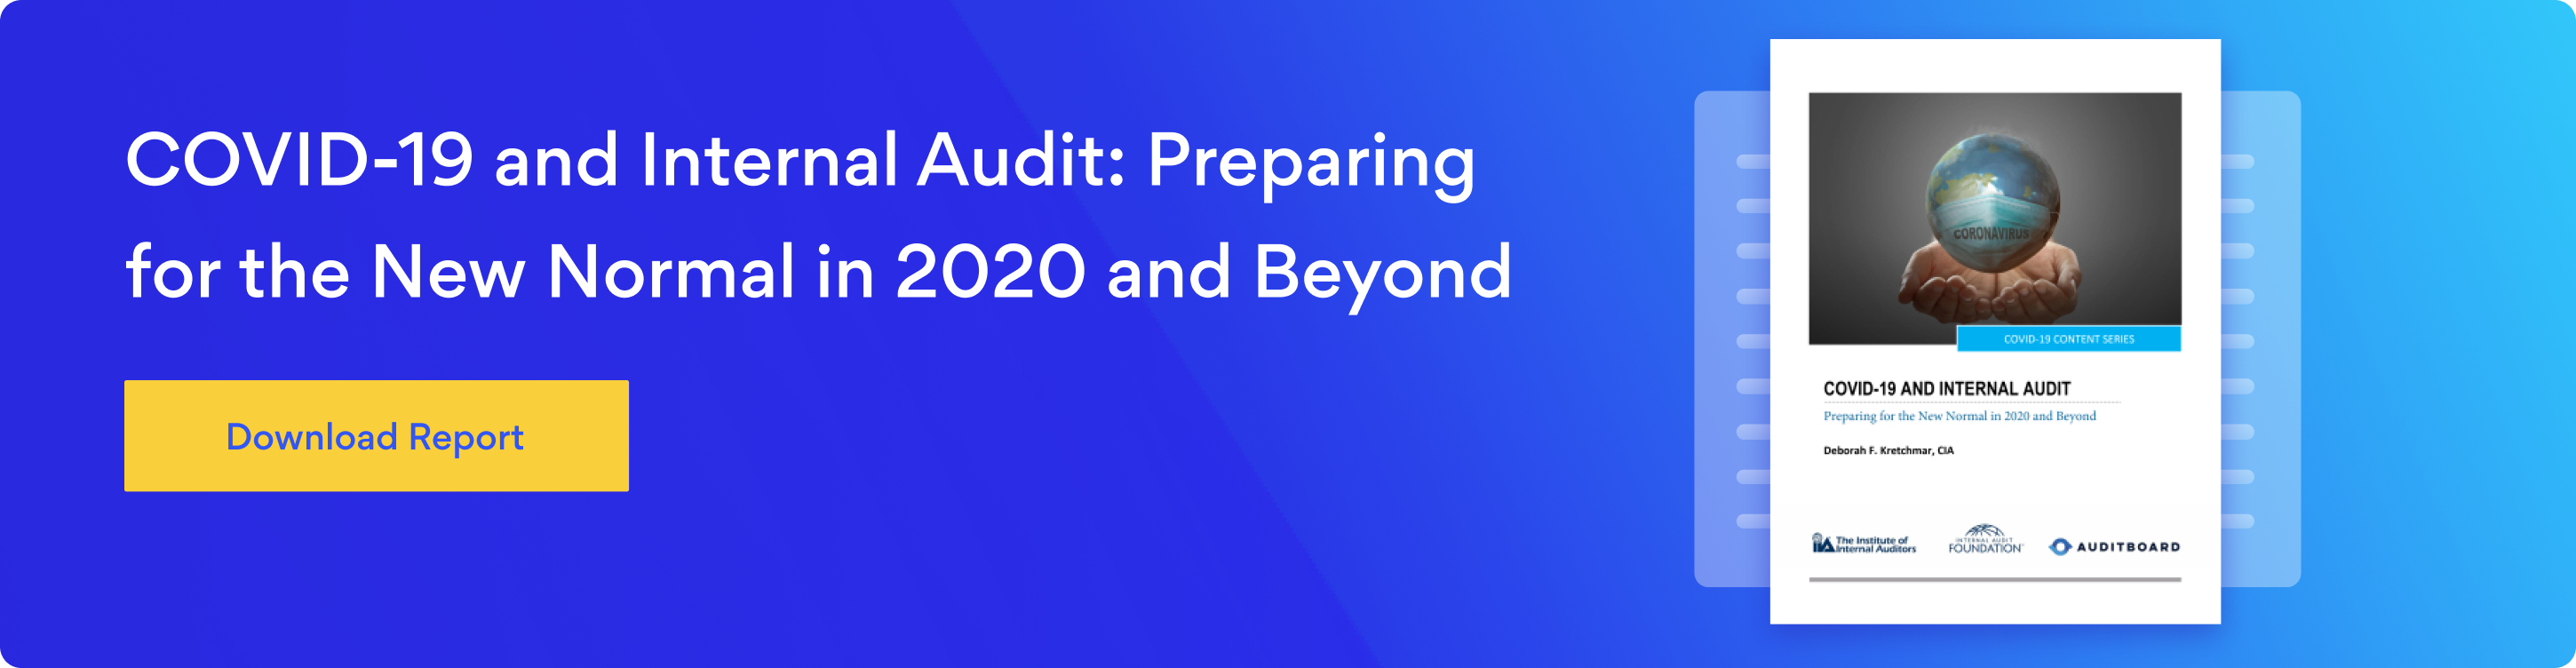 Click here to download our free report on COVID-19 and Internal Audit: Preparing for the New Normal in 2020 and Beyond.